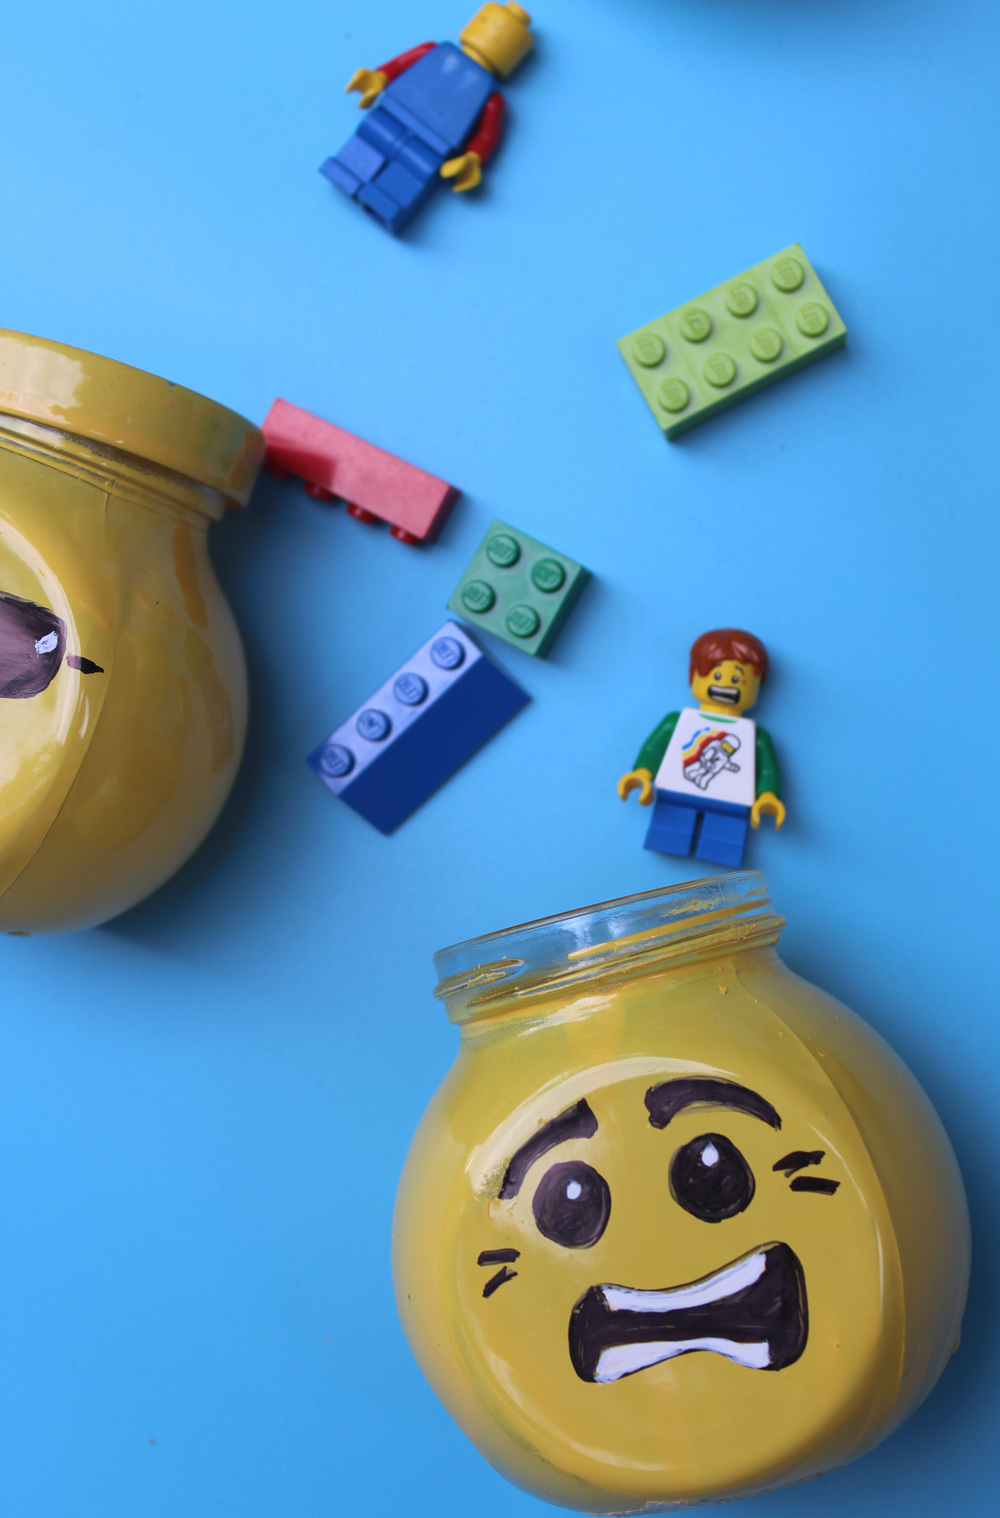 Lego head storage jar